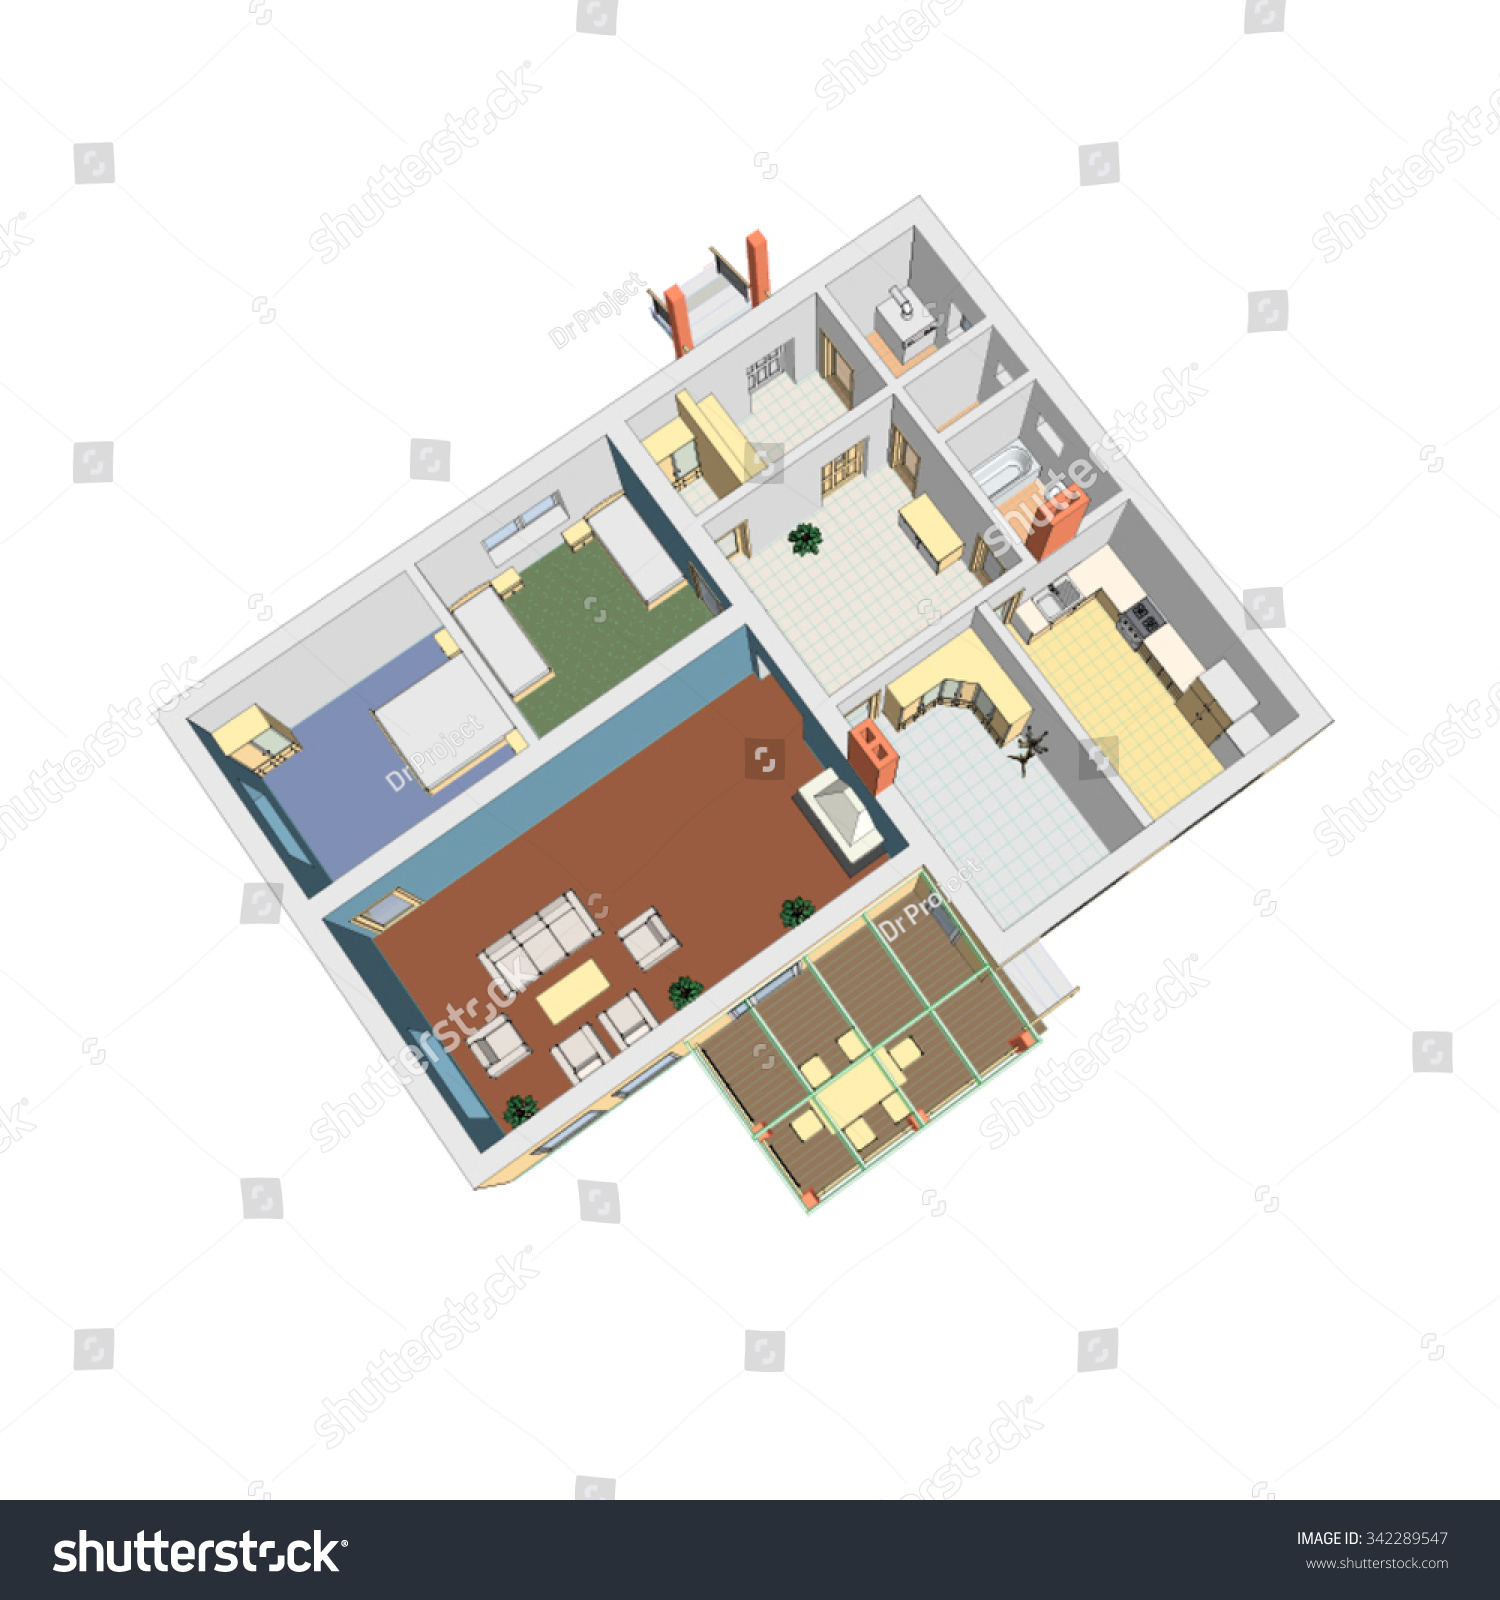 3d floor plan vector illustration apartment stock vector for Apartment design vector